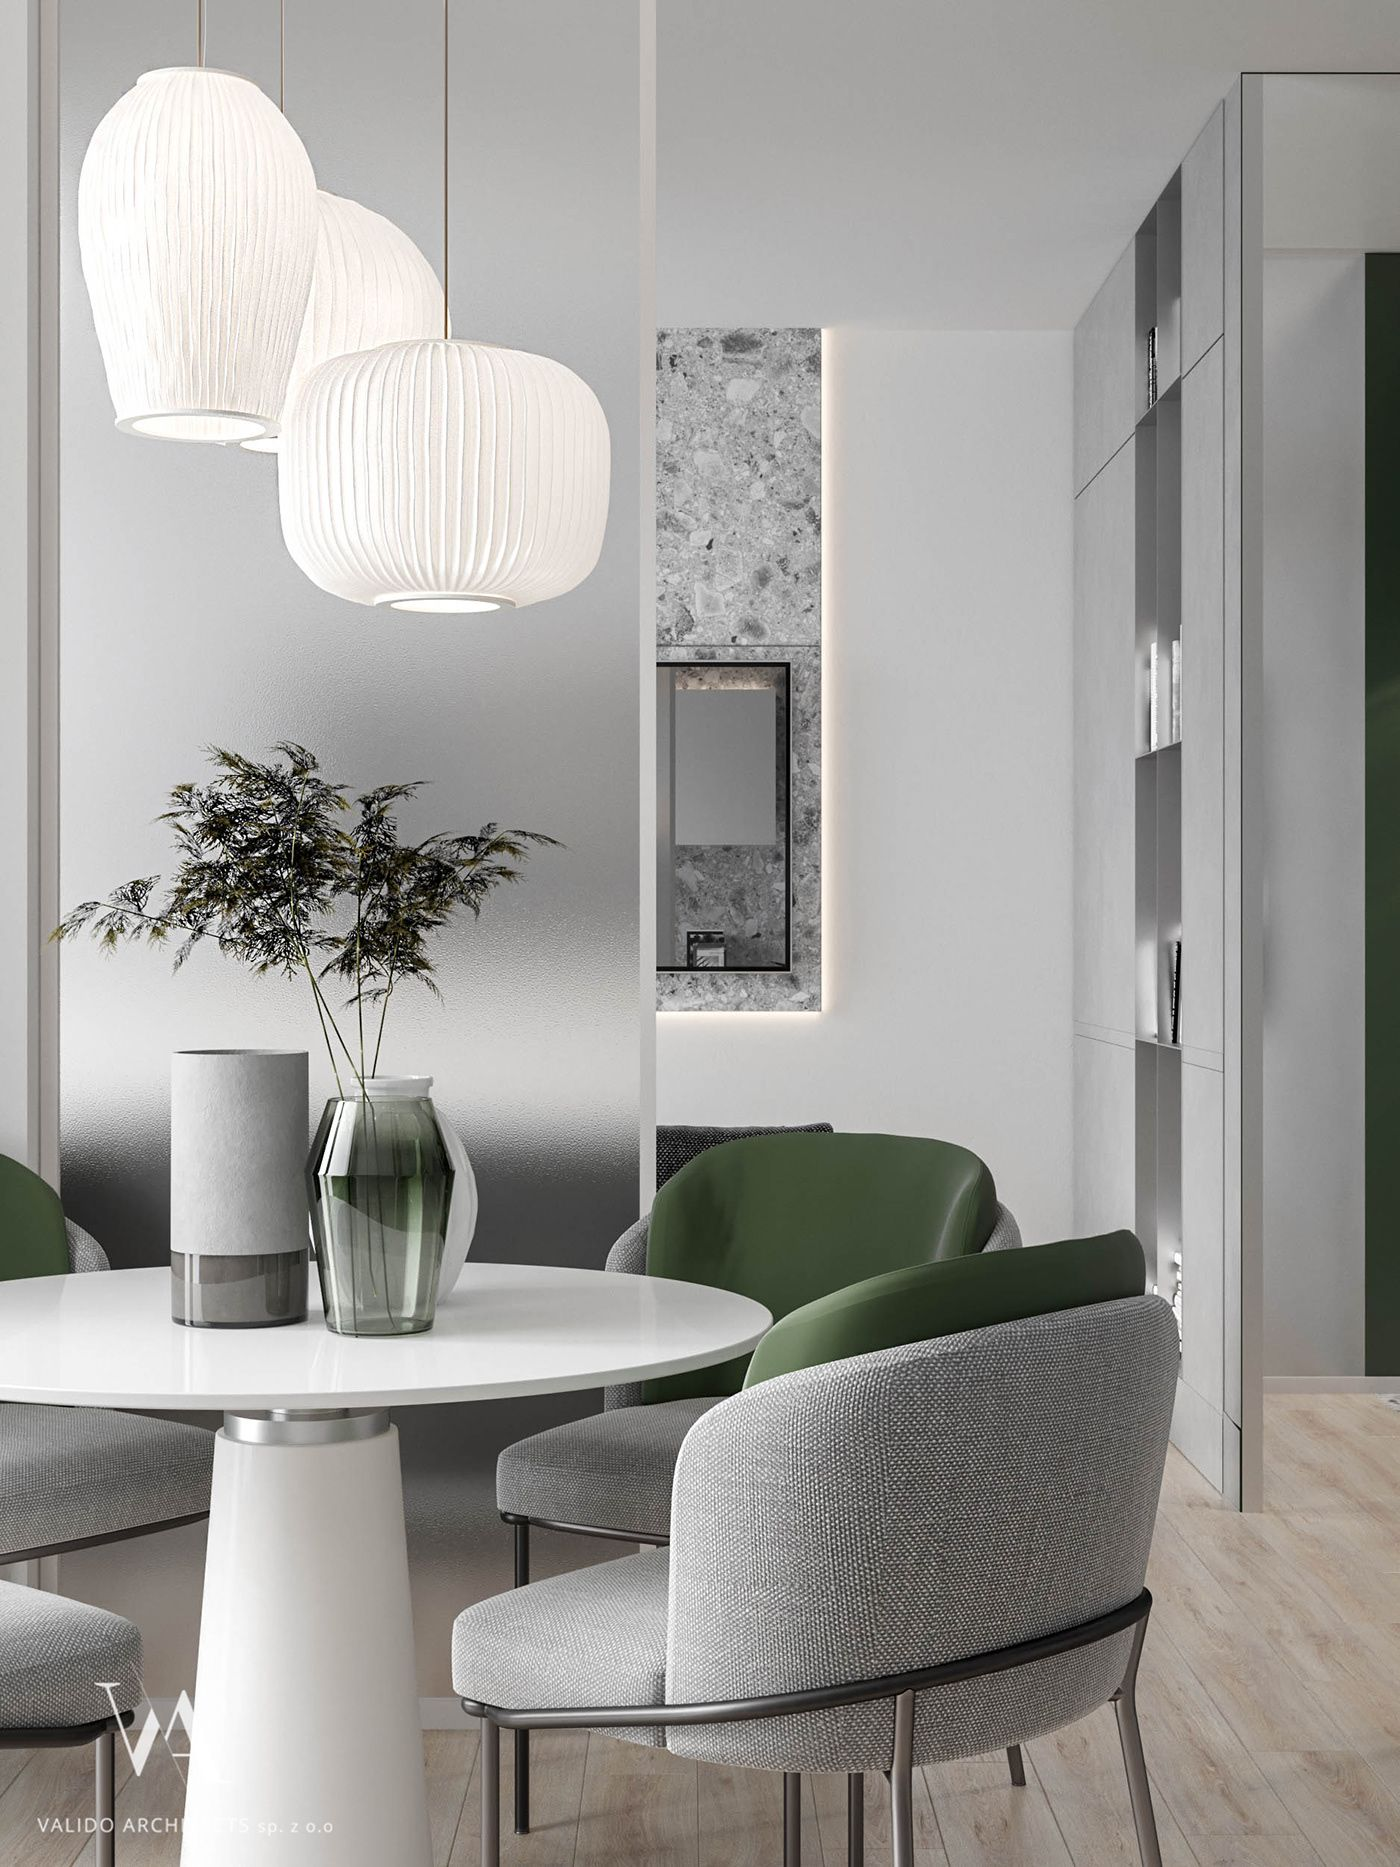 Help Designing A Room: 4 Green Decor Schemes That Help You Feel Closer To Nature